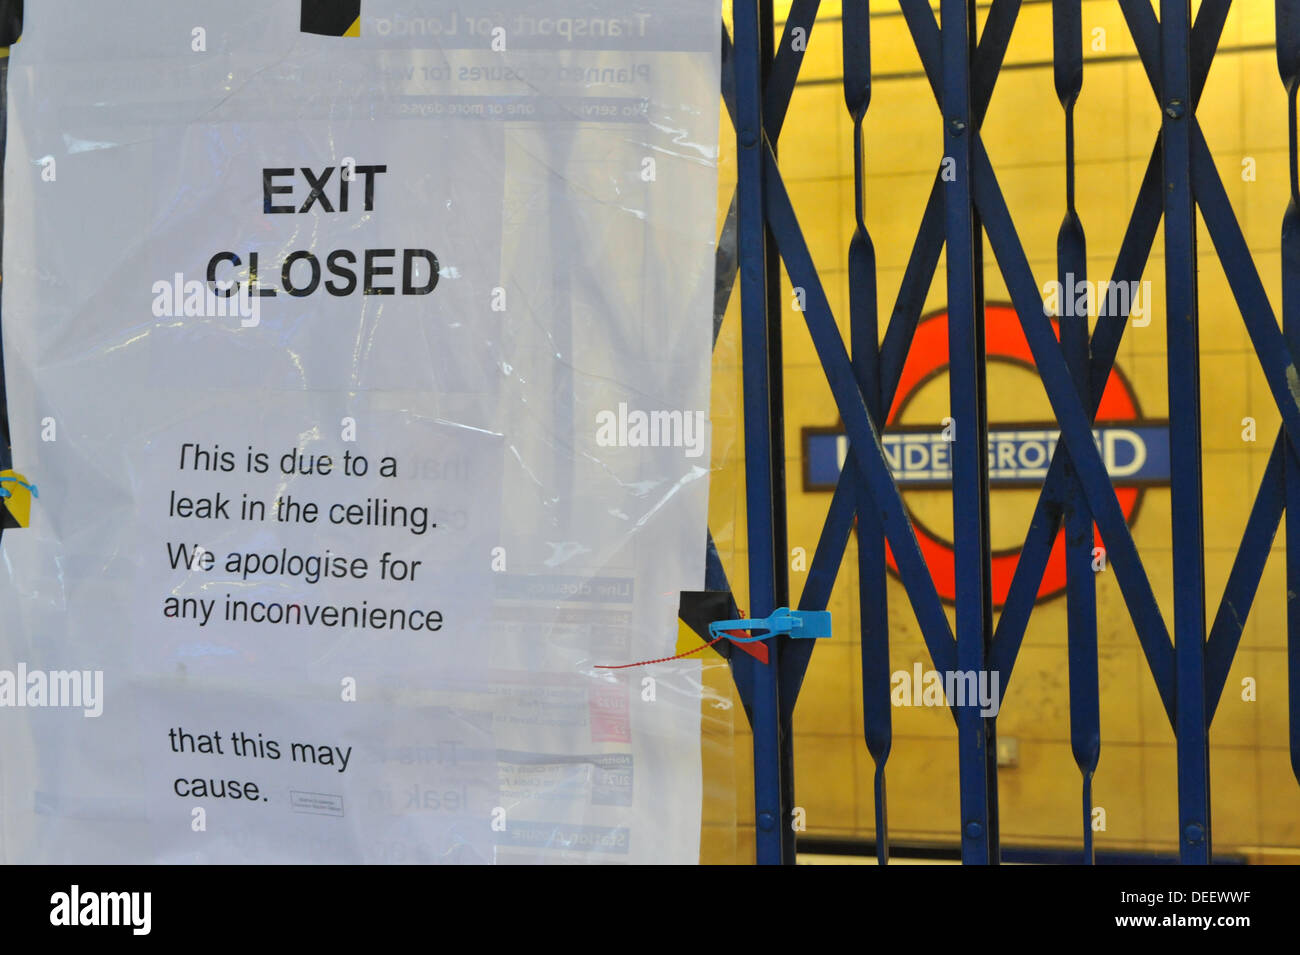 Leicester Square, London, UK. 17th September 2013. An entrance to Leicester Square  tube is closed due to water leaks. Credit:  Matthew Chattle/Alamy Live News - Stock Image